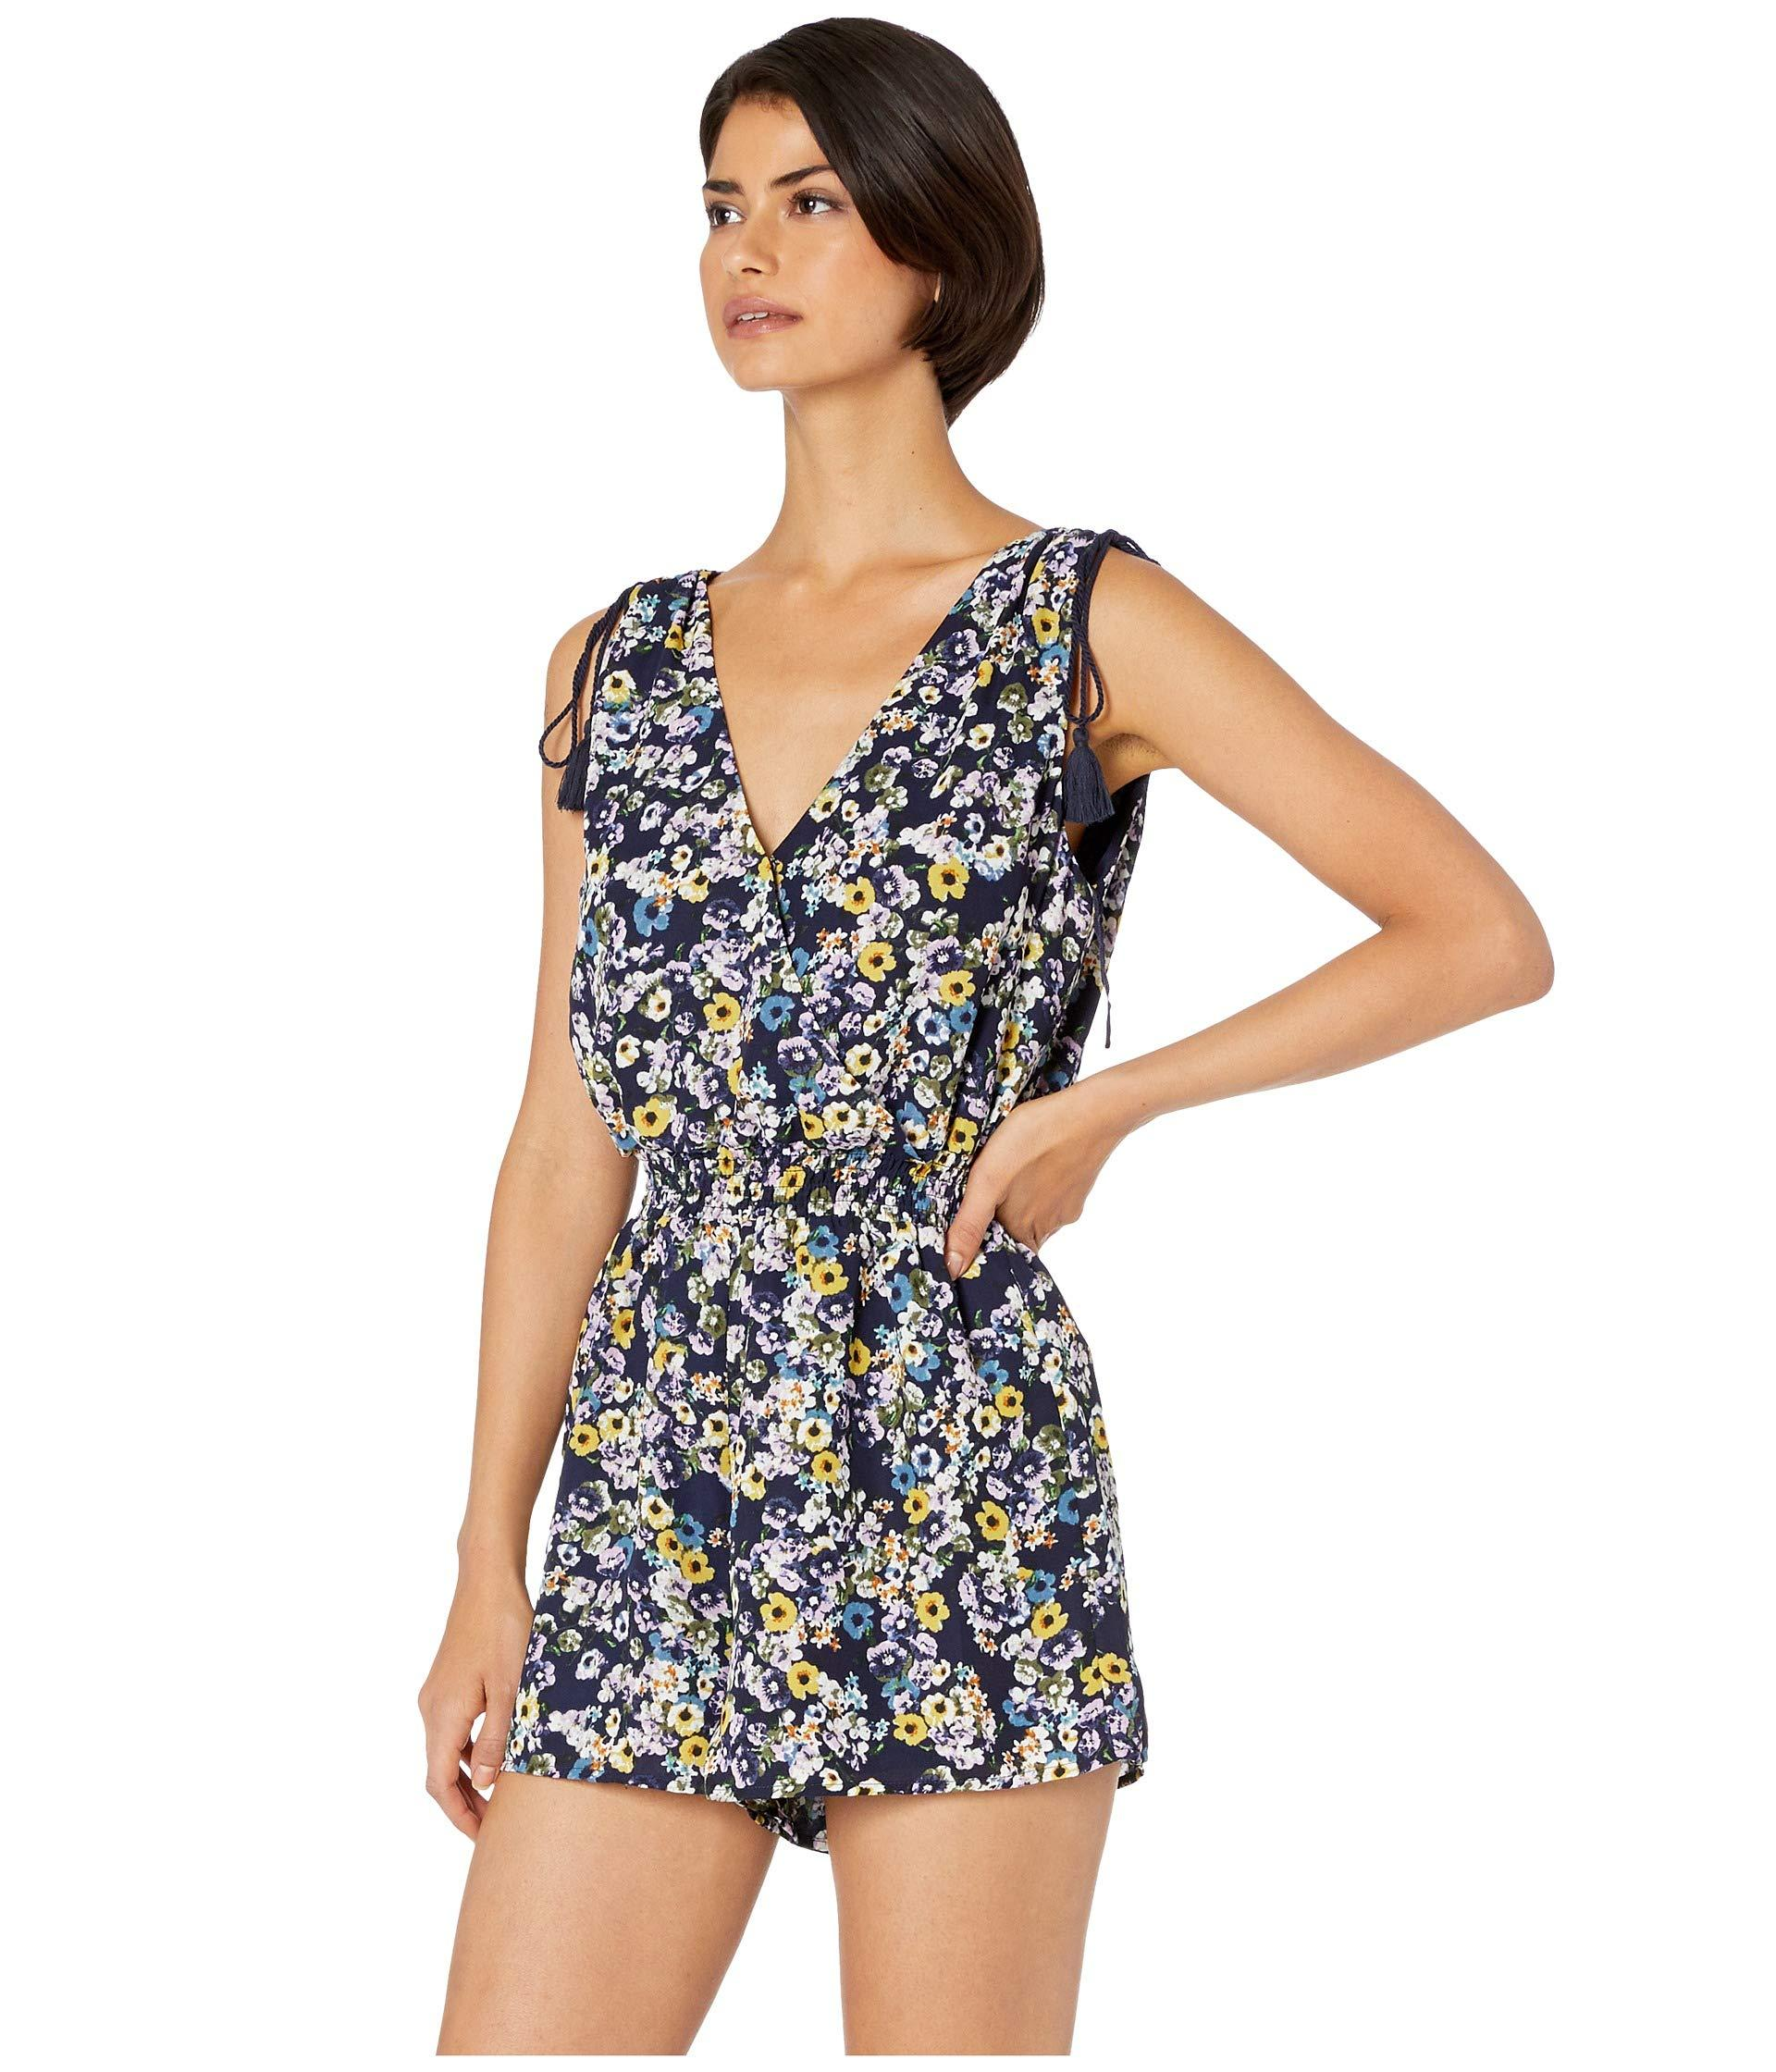 966d5ebaa747 Lyst - Cupcakes And Cashmere Meadow Floral Printed Romper (lapis ...